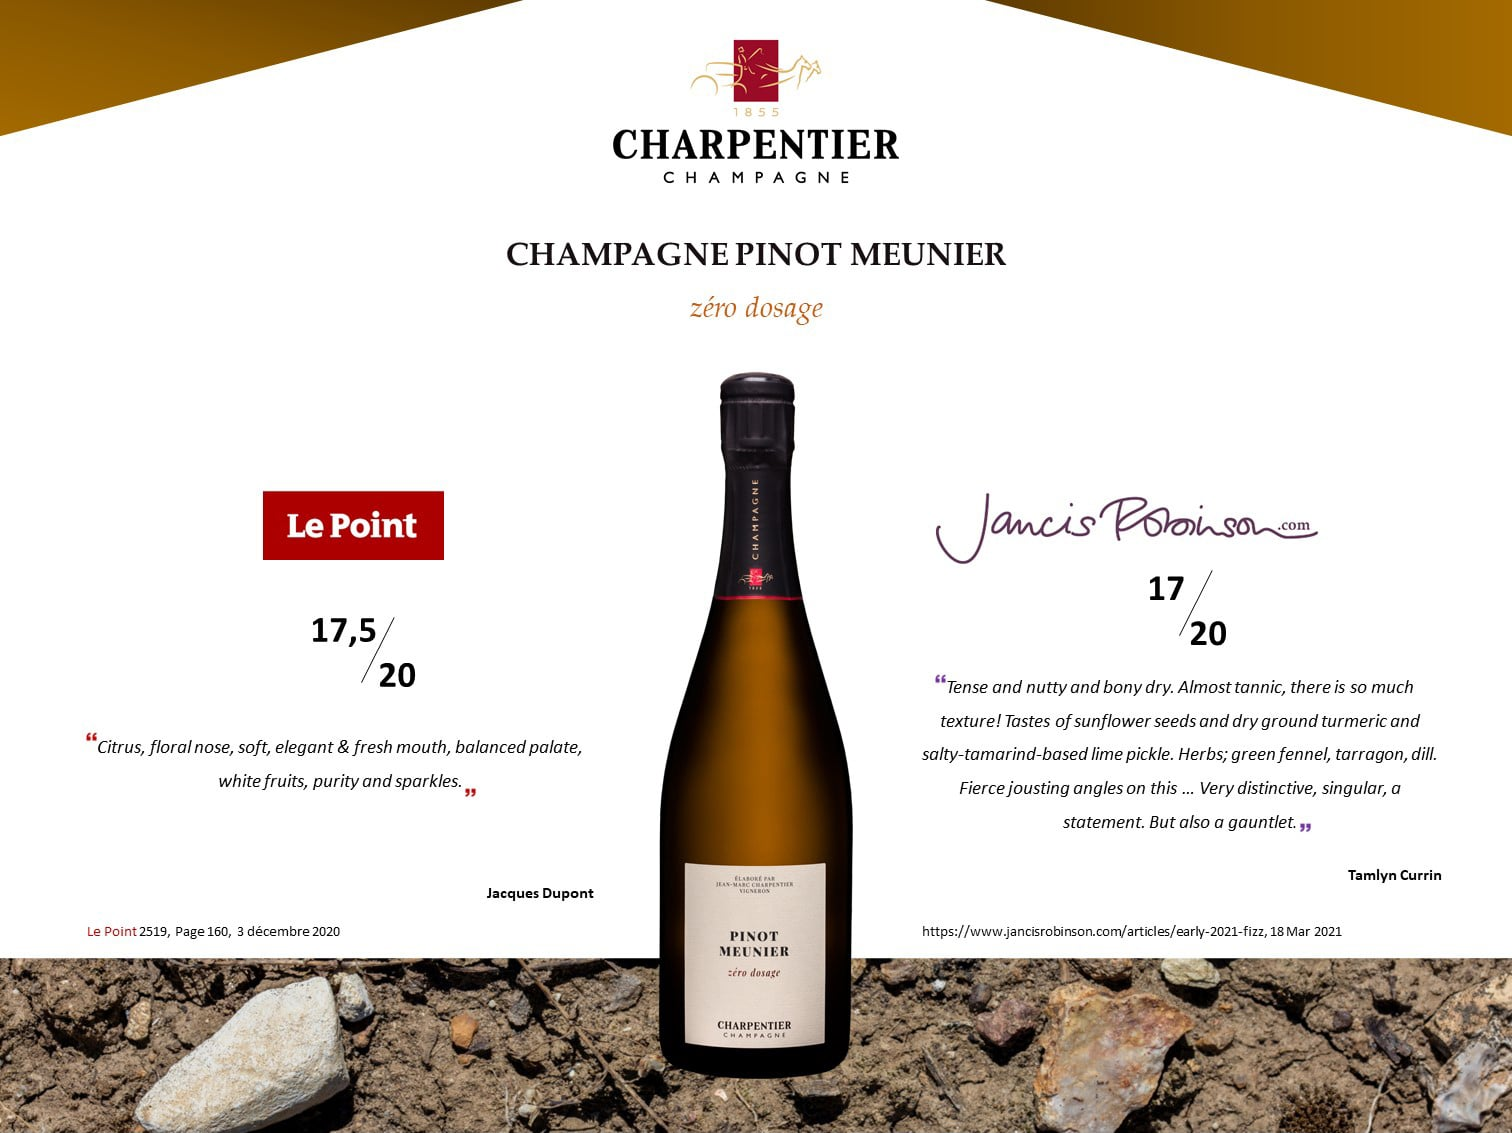 Champagne-CHARPENTIER-Charly-Sur-Marne-Pinot-Meunier-zero-dosage-Press-articles-J.-Dupont-et-J.-Robinson